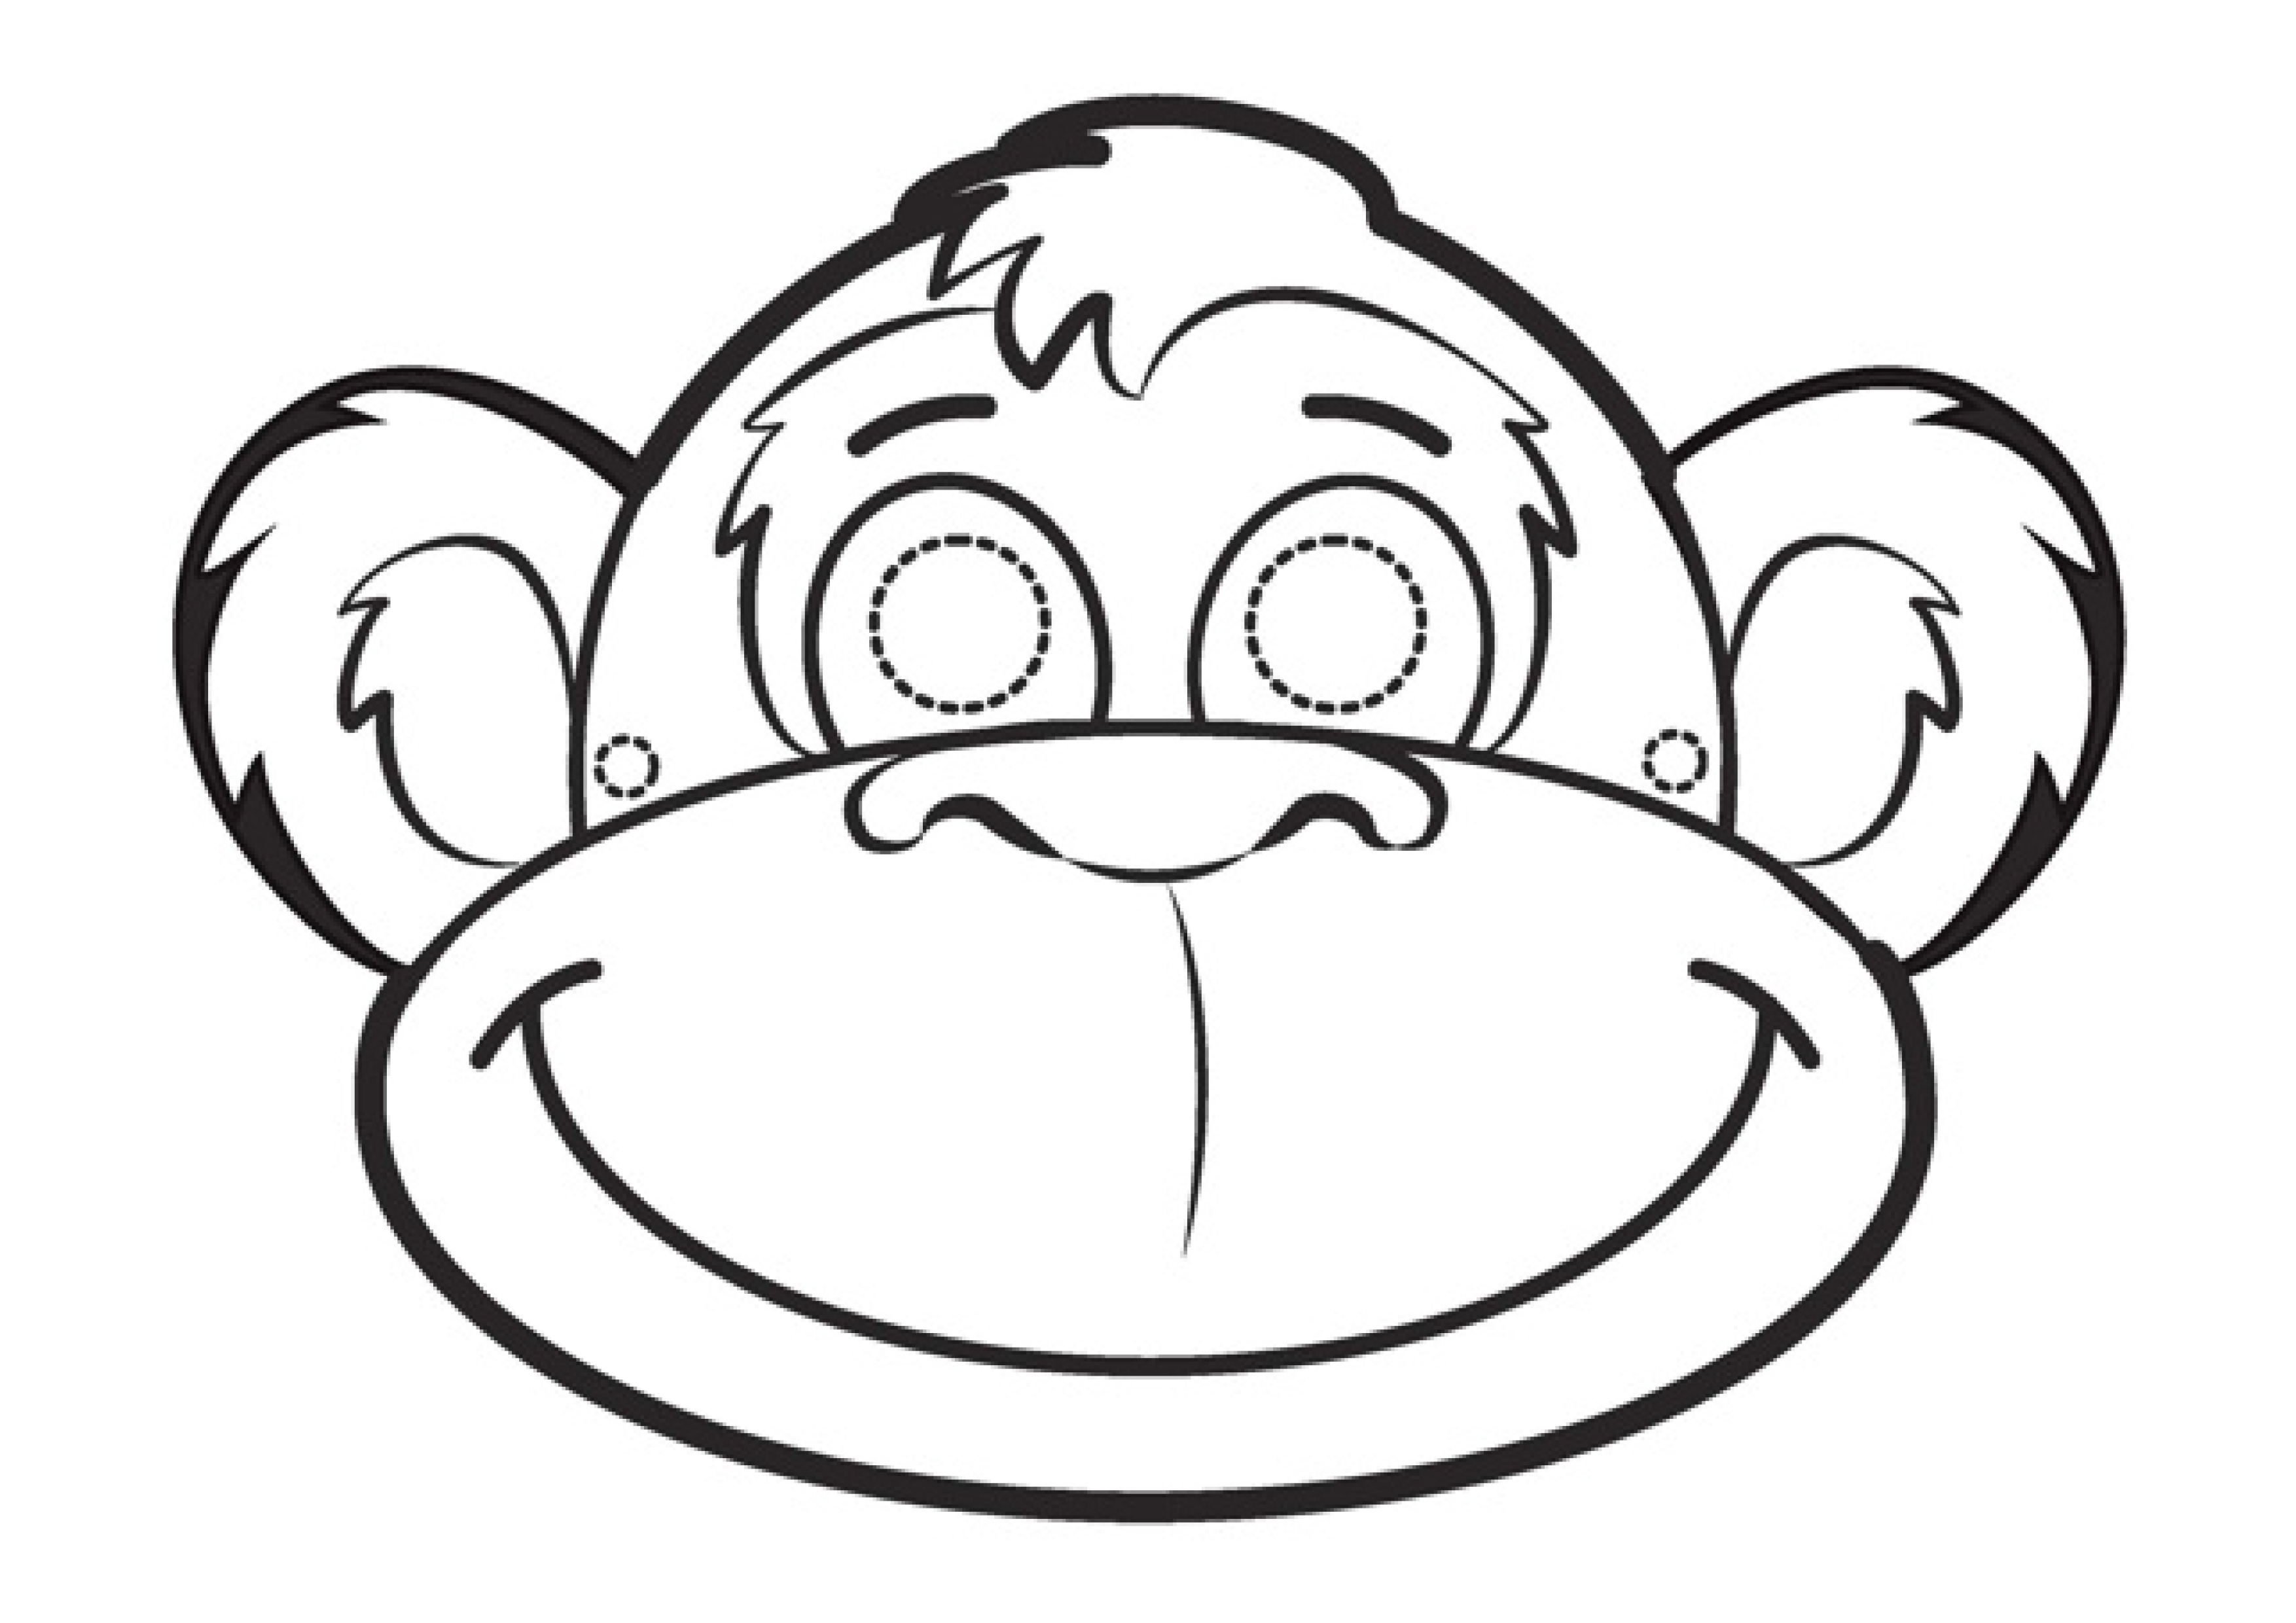 Contemporary Monkey Face Mask Template Illustration - Resume Ideas ...